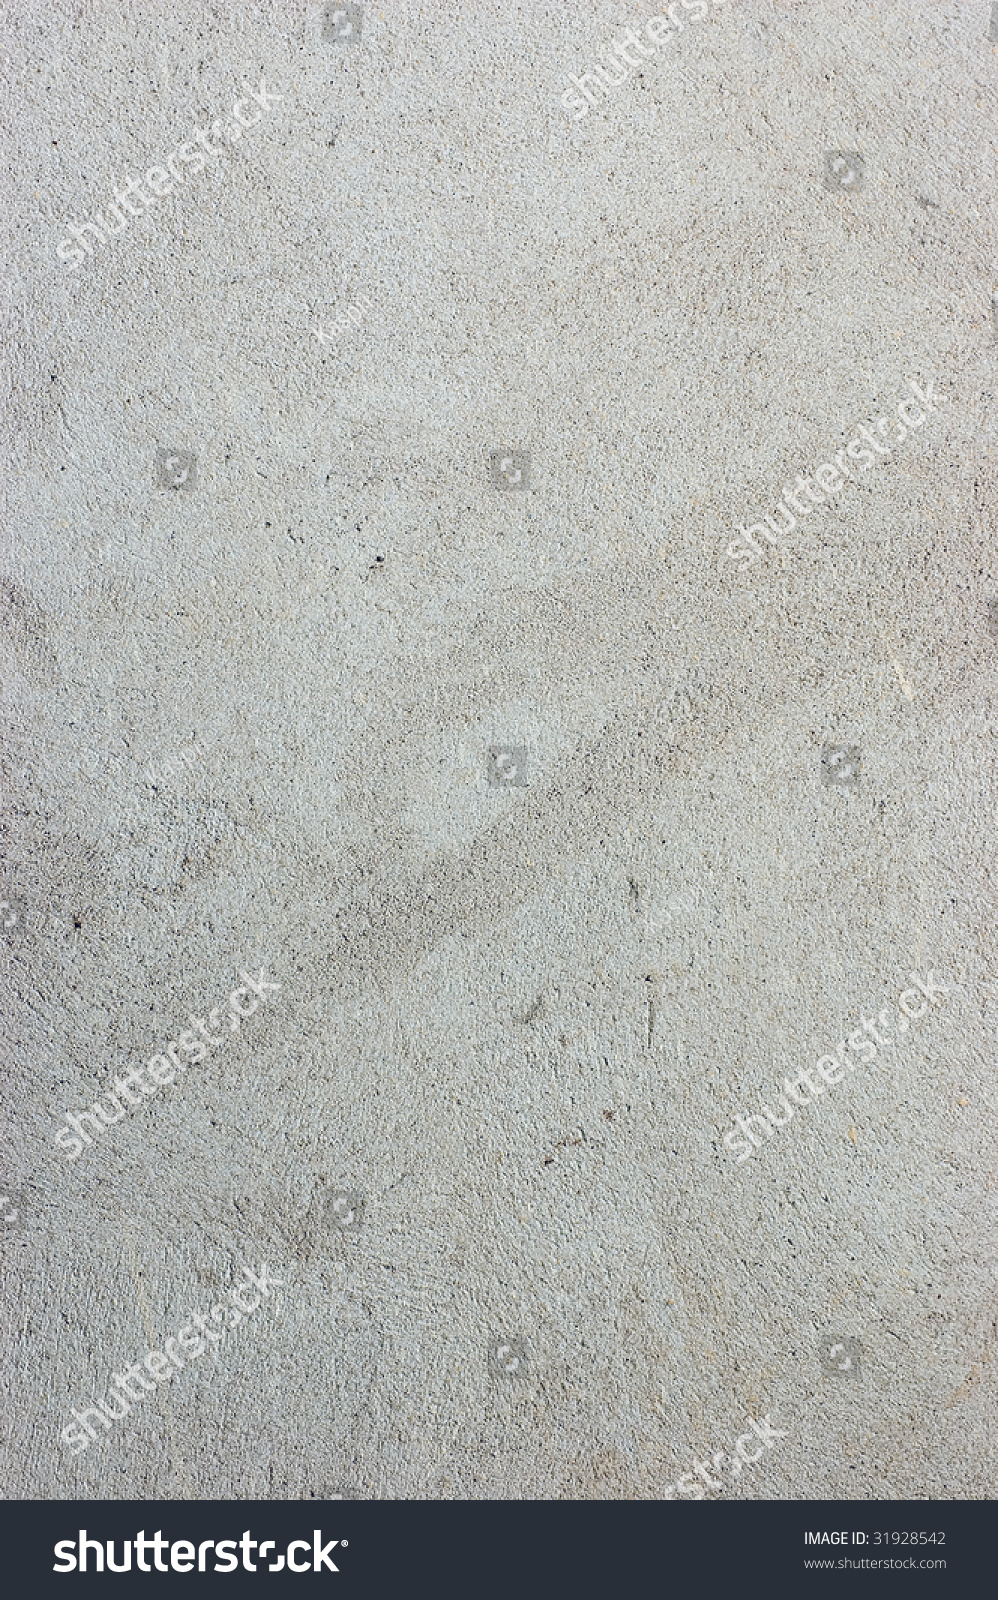 Grunge Wall Stucco Texture Natural Rustic Background